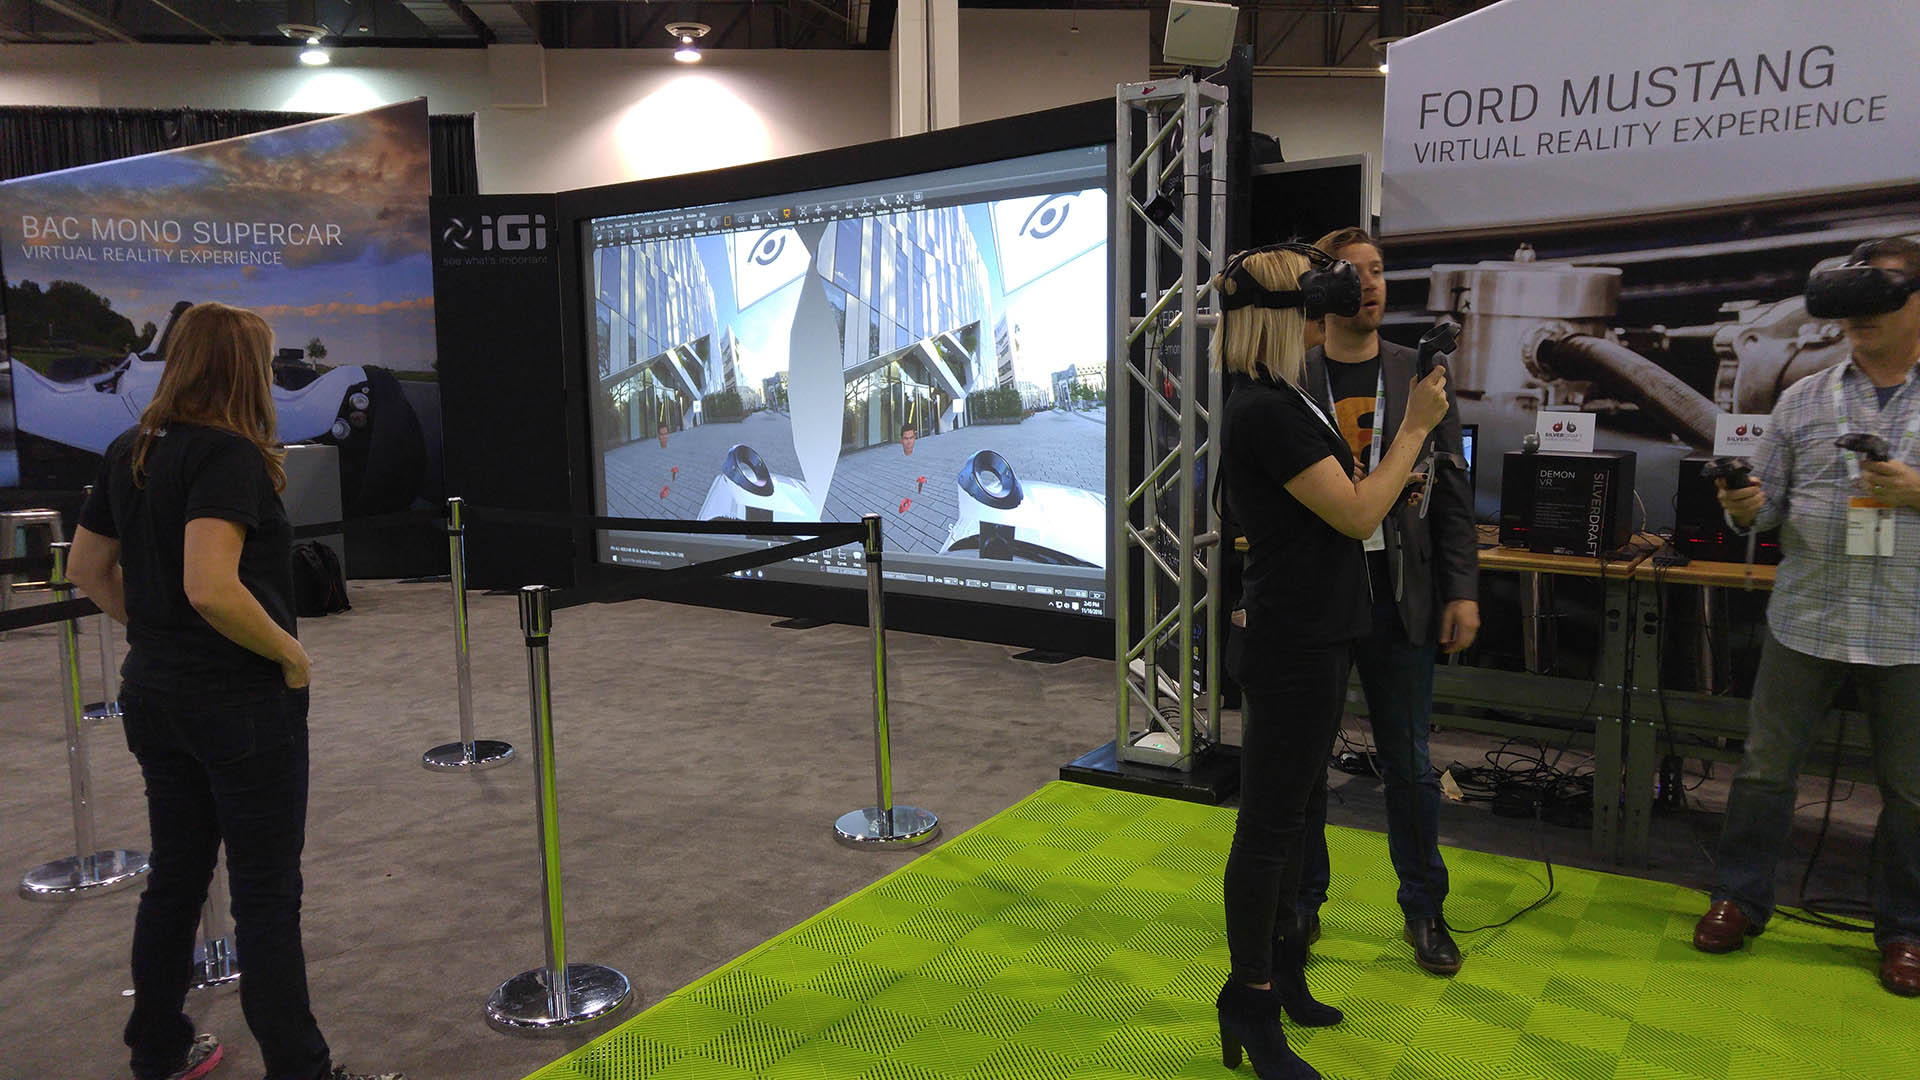 Ford mustang virtual reality expo conference IGI event